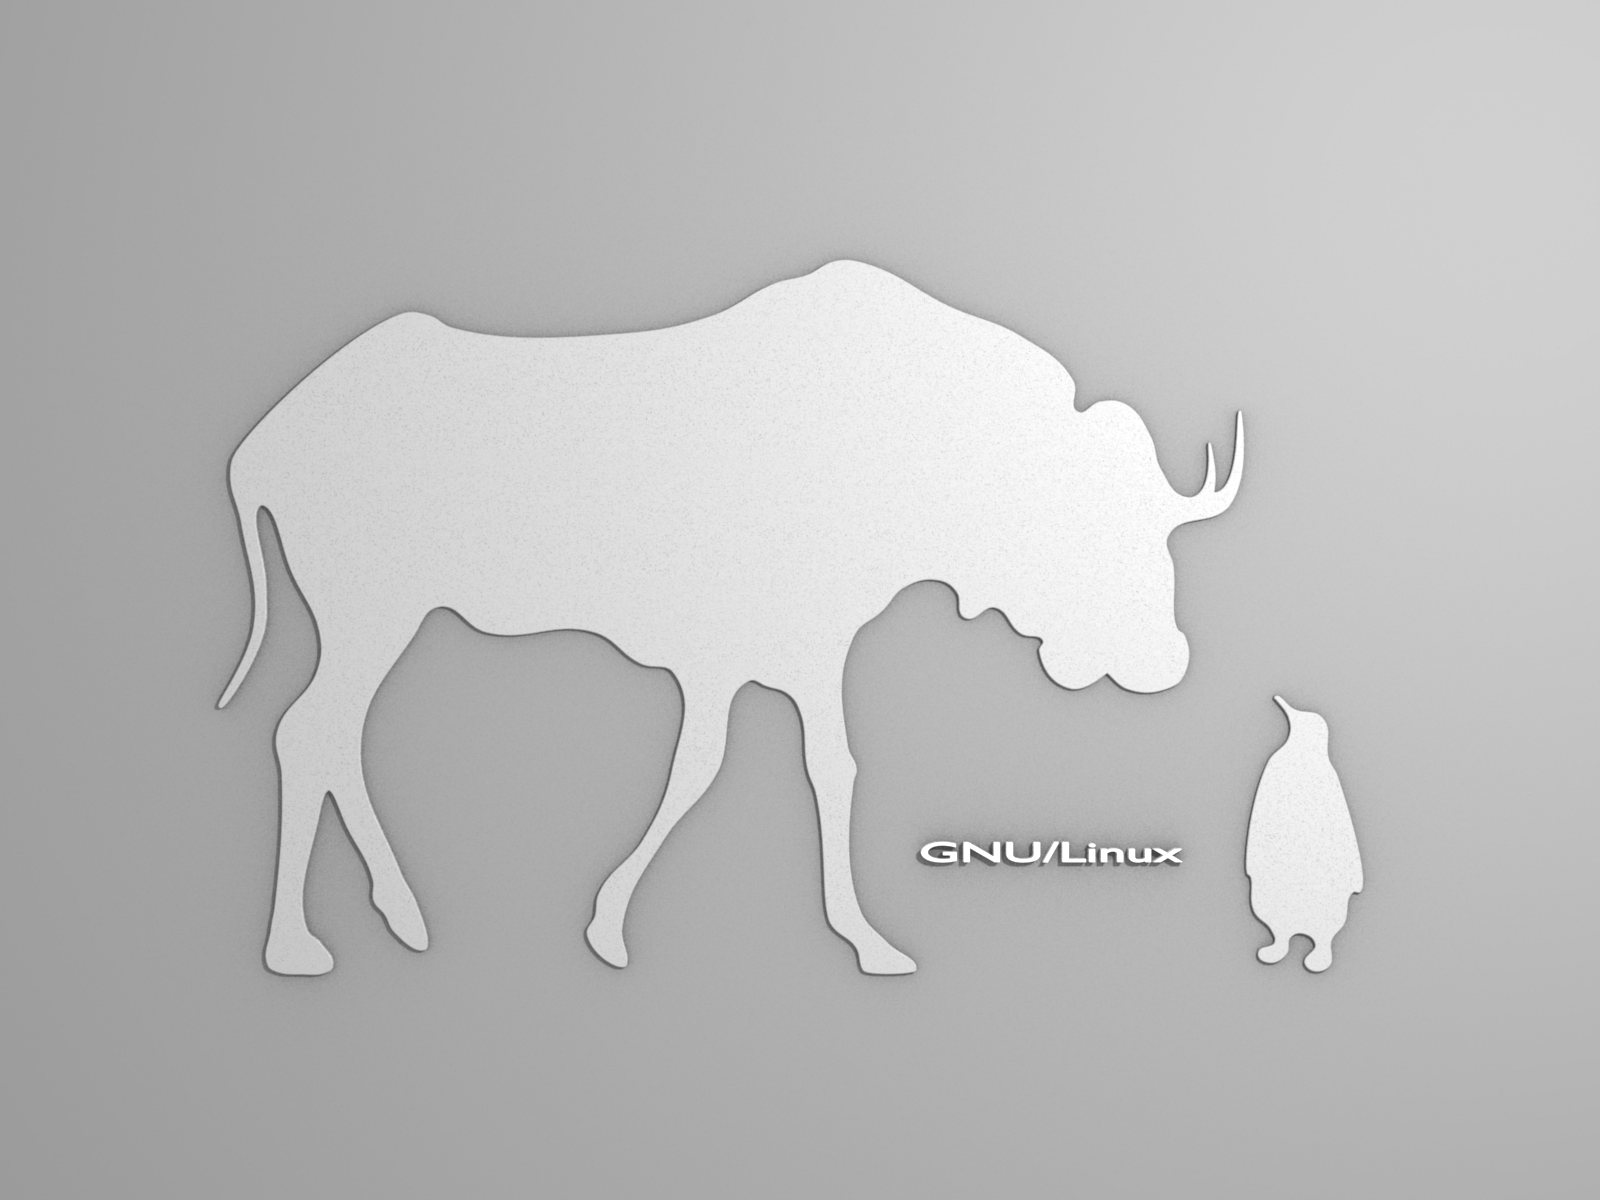 100% Quality Gnu HD Wallpapers, 1600x1200 px